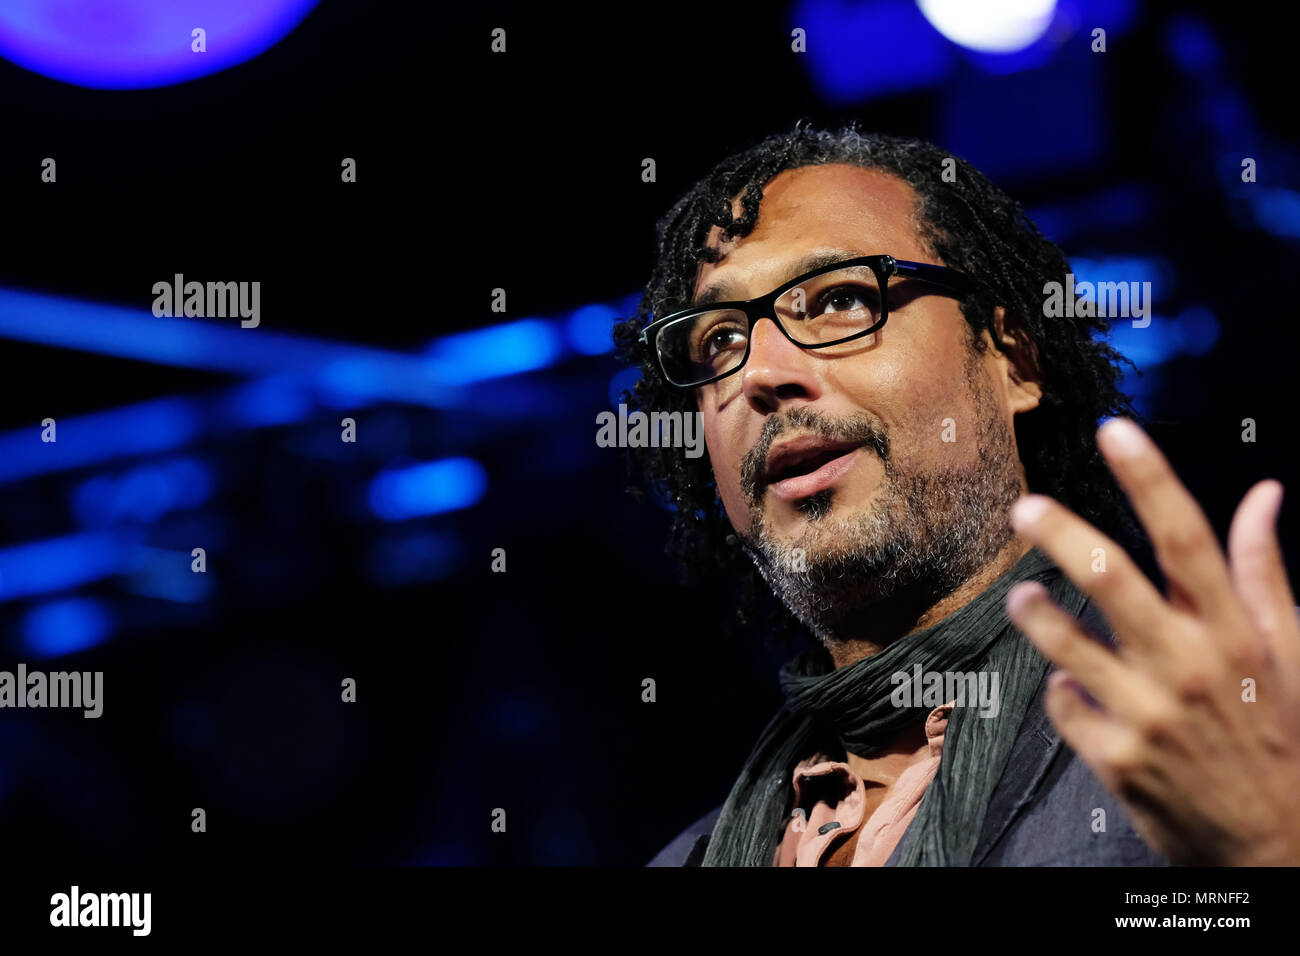 Hay Festival, Hay on Wye, UK - May 2018 - David Olusoga historian, author and broadcaster talks about his book Black and British - A Forgotten History - Photo Steven May / Alamy Live News - Stock Image